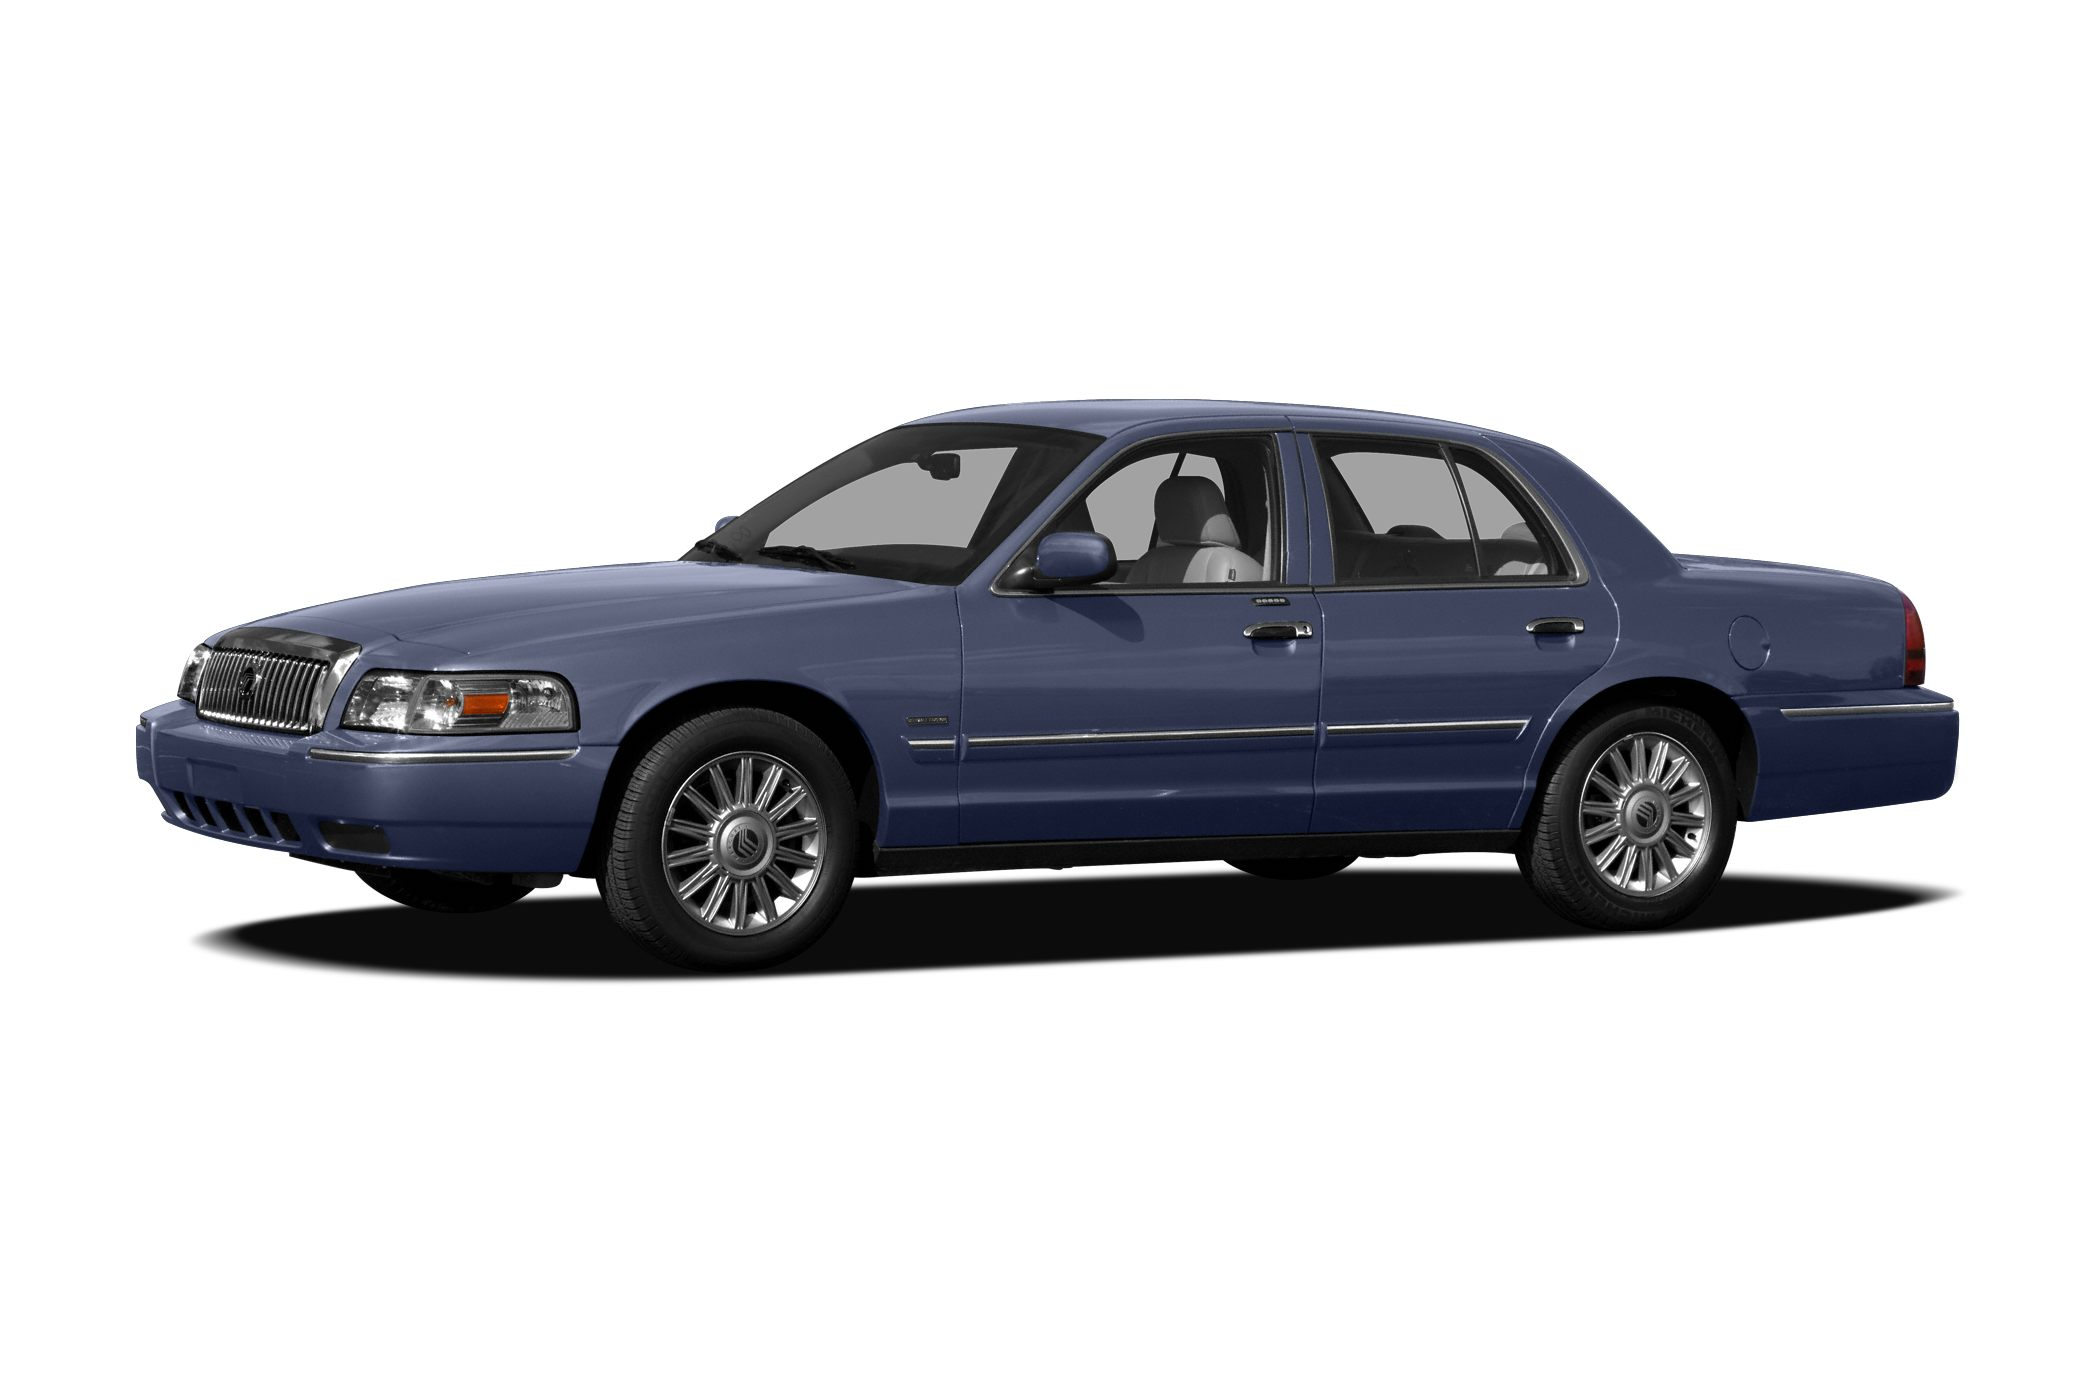 2009 Mercury Grand Marquis LS Sedan for sale in Stuttgart for $9,980 with 92,053 miles.